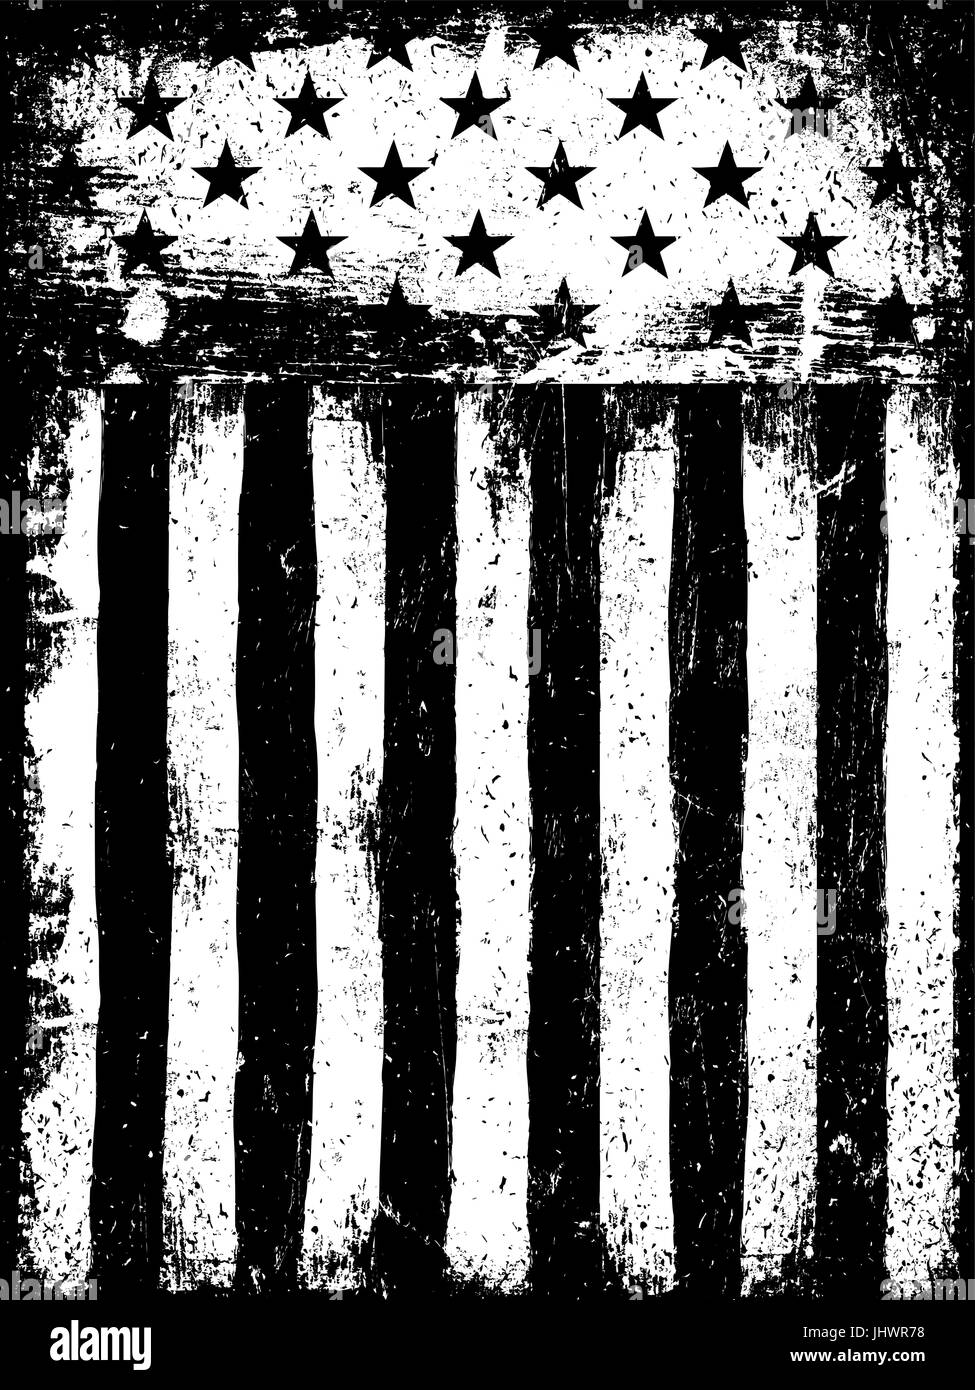 Stars And Stripes Monochrome Negative Photocopy American